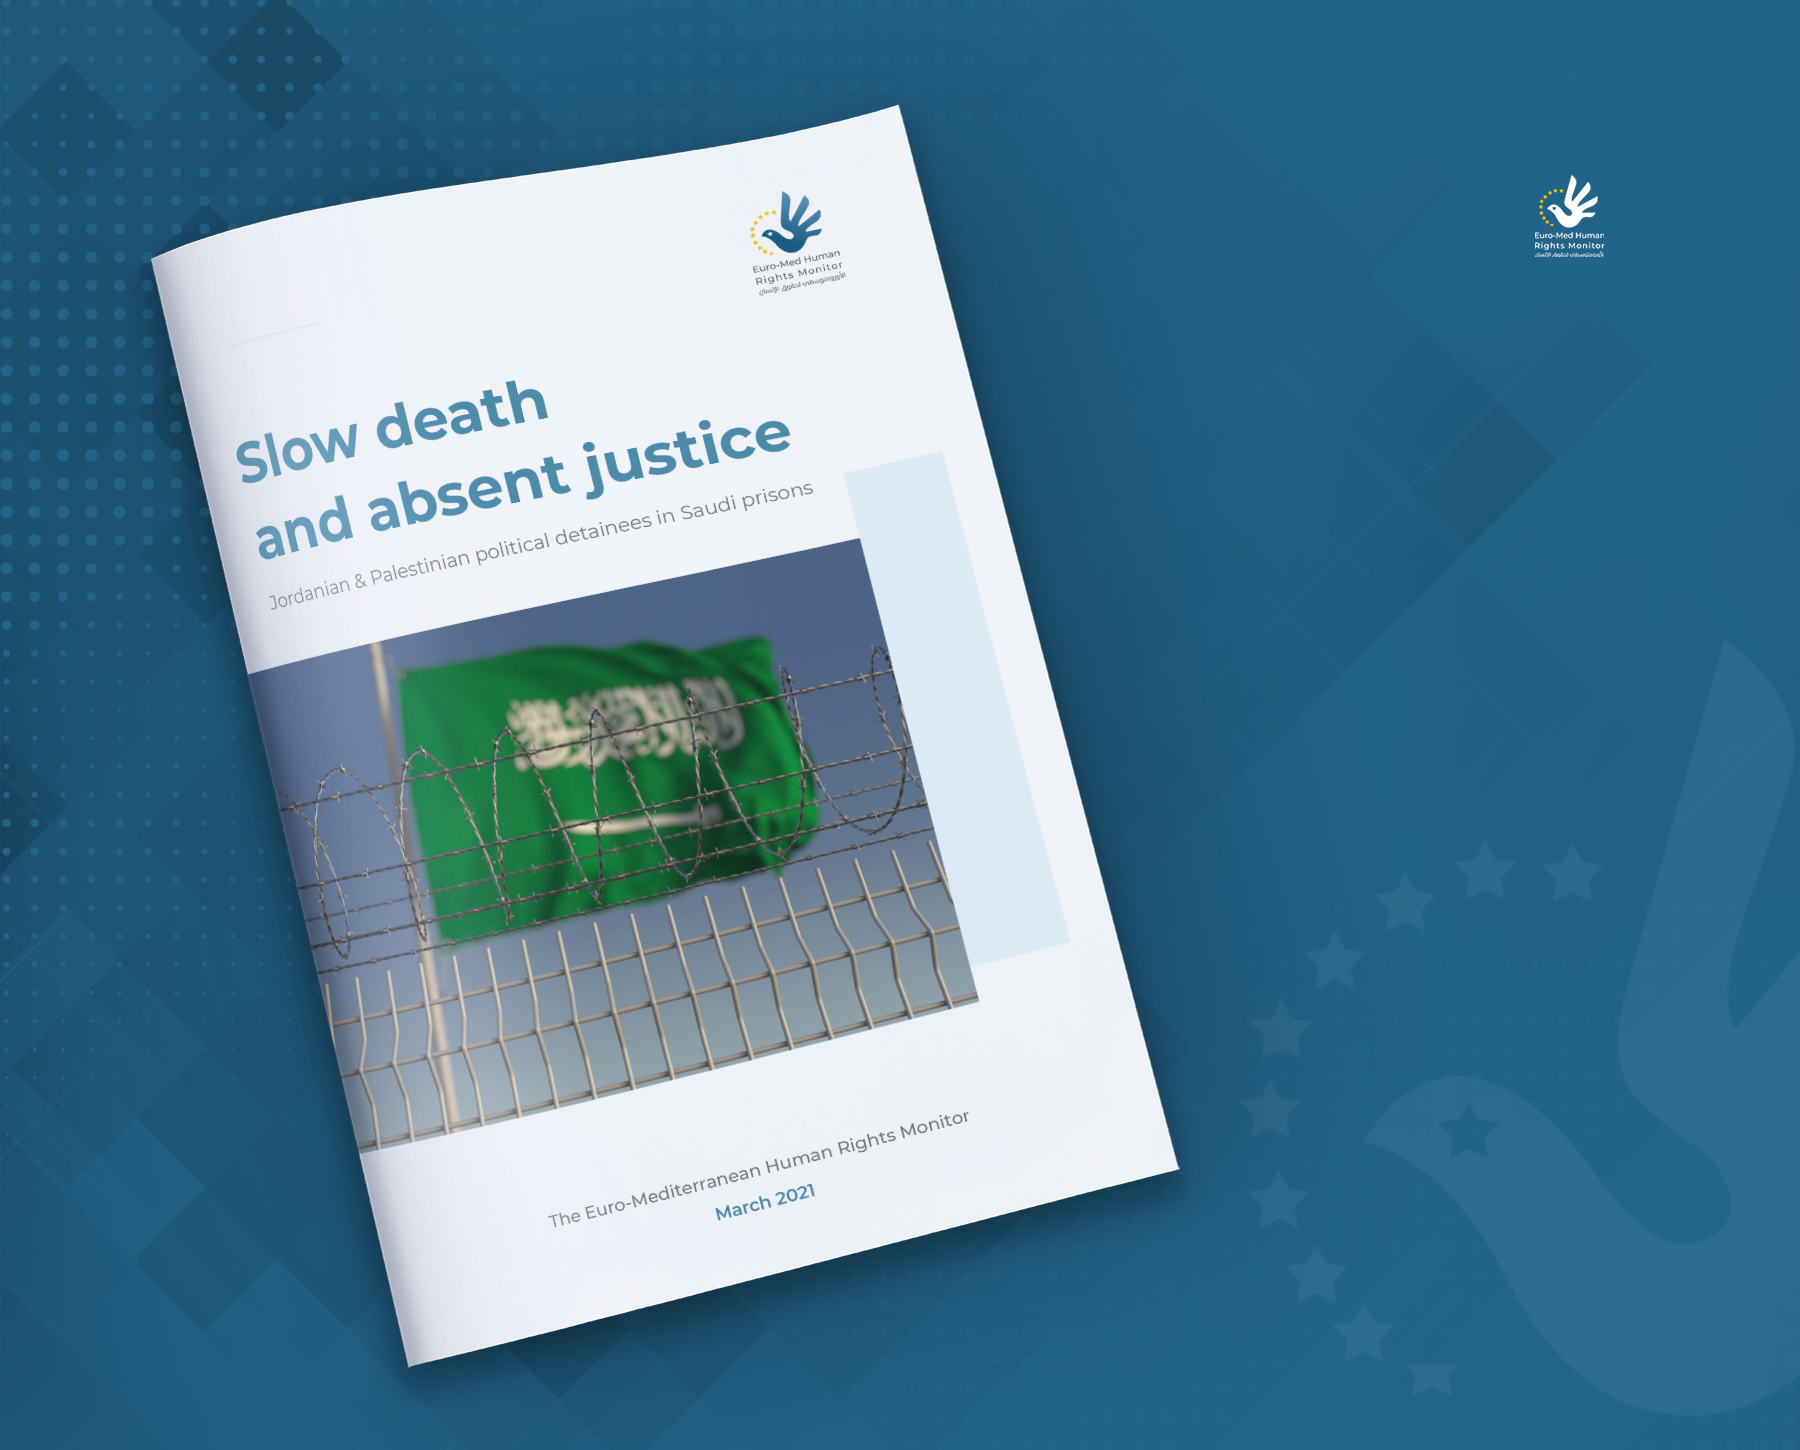 Slow Death and Absent Justice..Jordanian and Palestinian Prisoners in Saudi Arabia